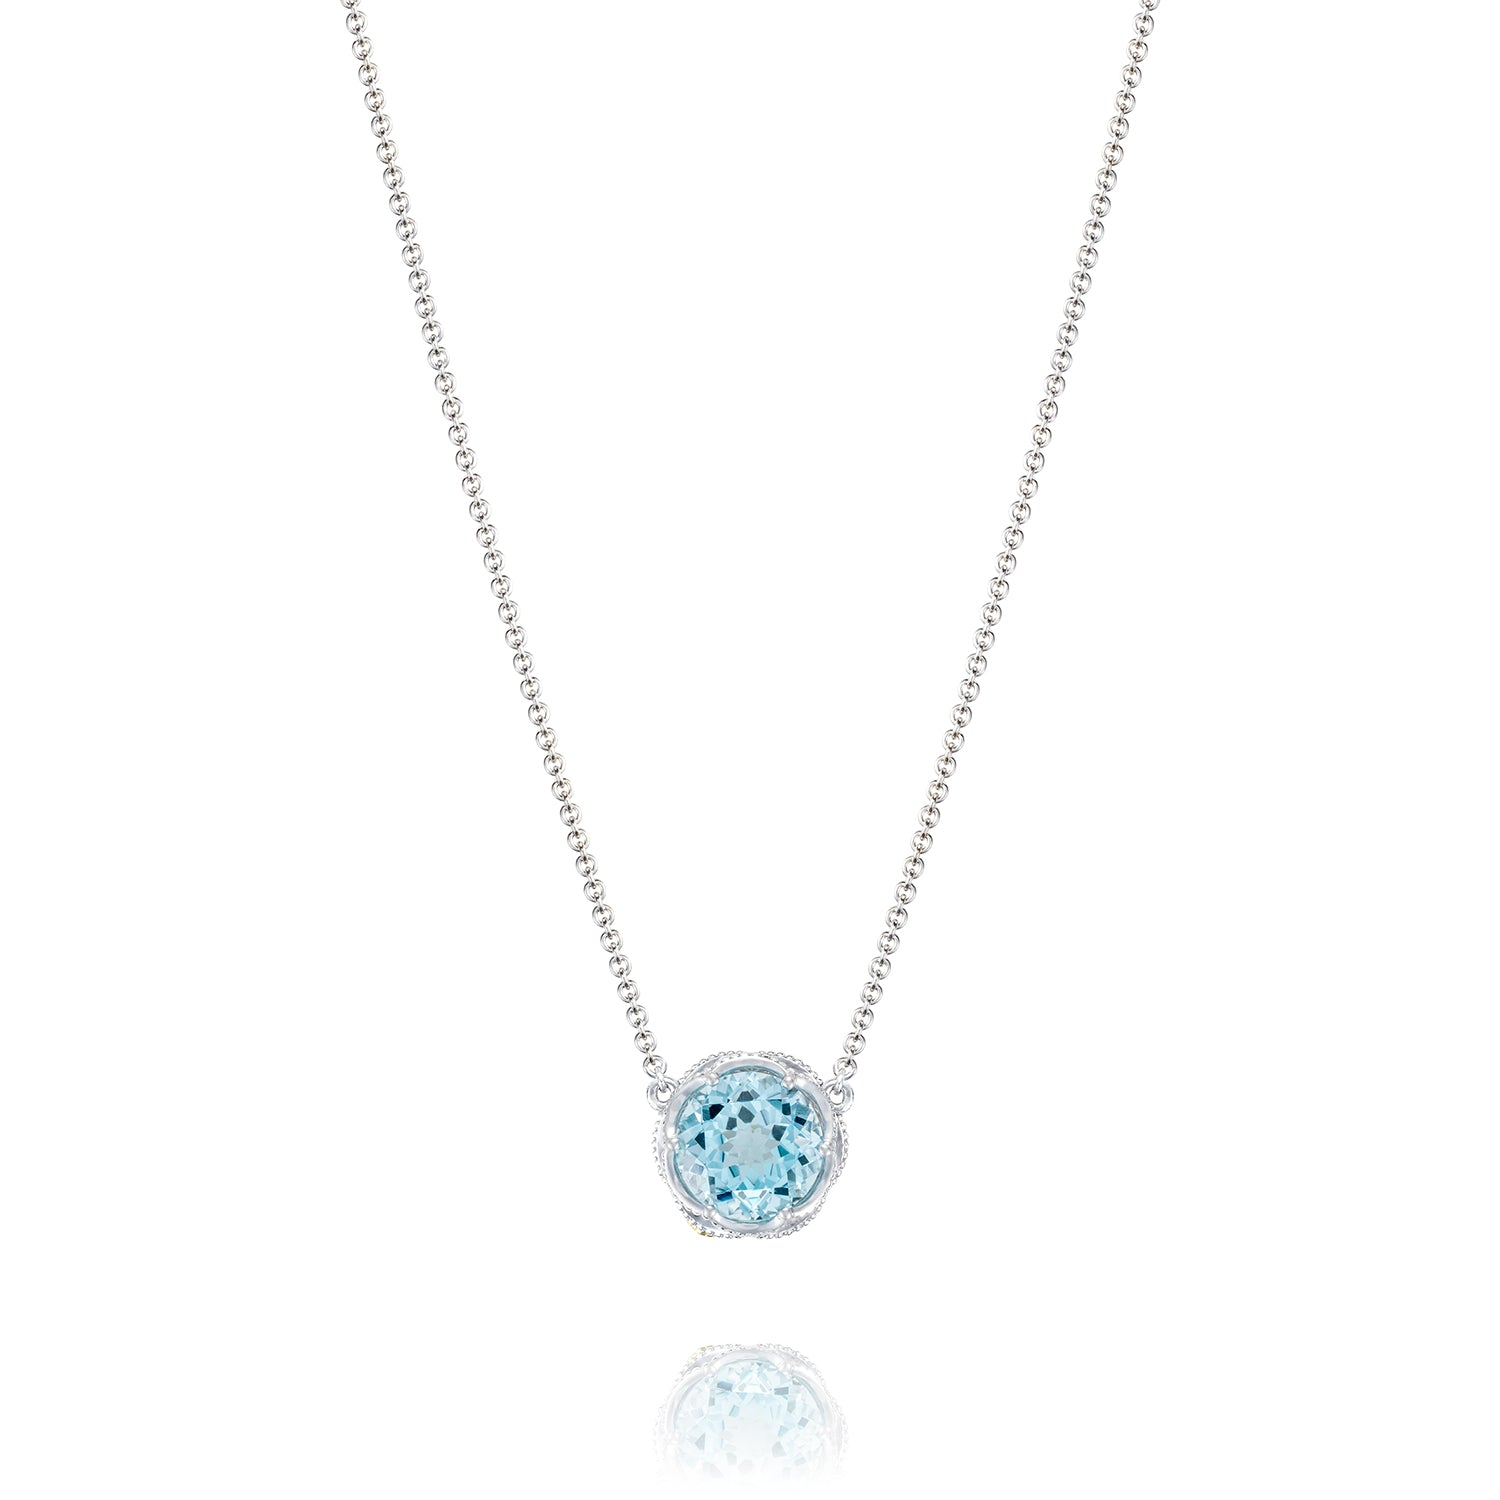 7dc8d850275b73 Tacori Bold Crescent Station Necklace featuring Sky Blue Topaz. Zoom